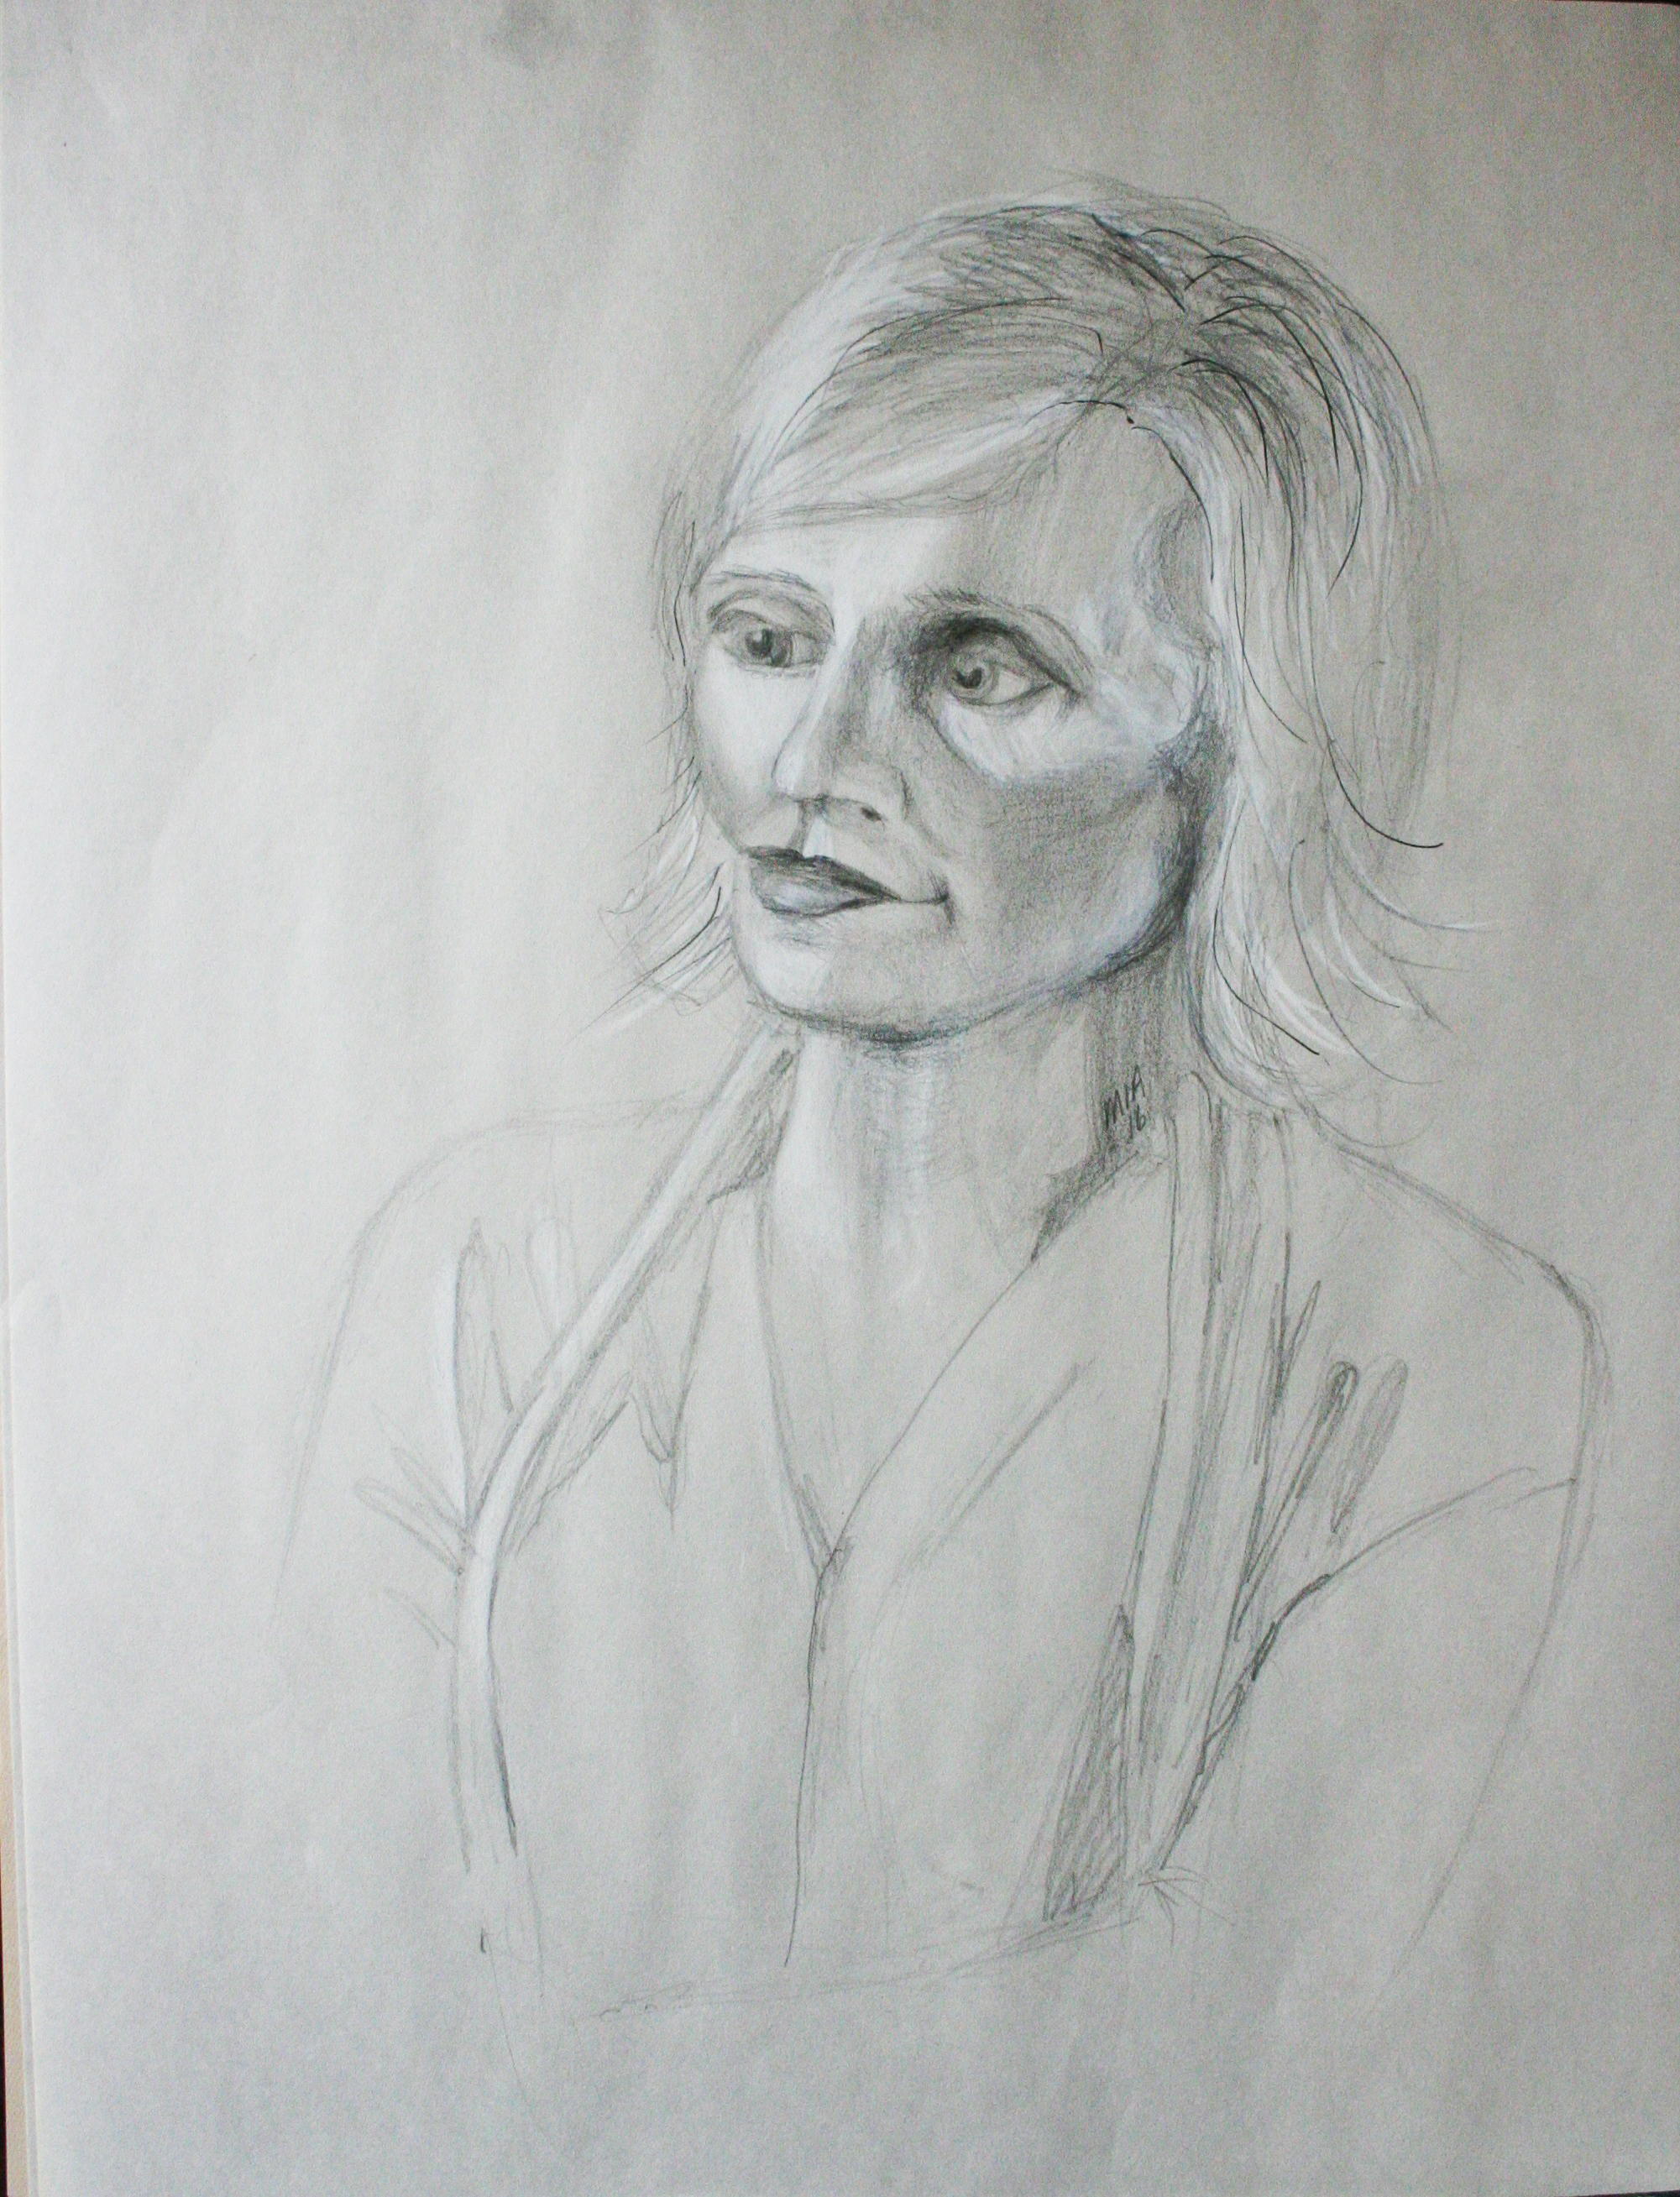 Maria Polk did this 3-hour drawing.